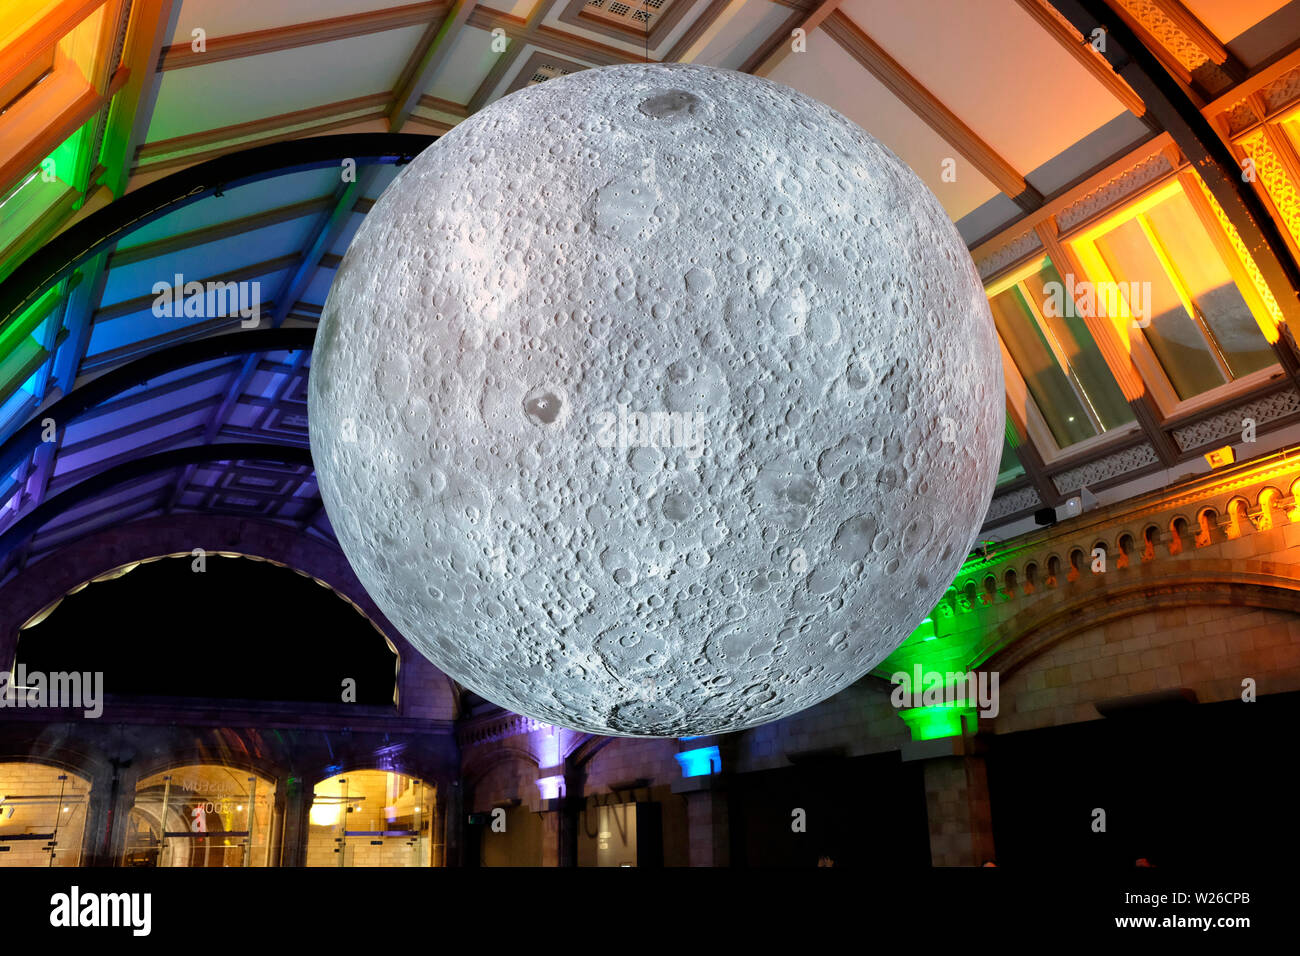 Moon exhibition at the natural history museum in South Kensington, London, UK - Stock Image